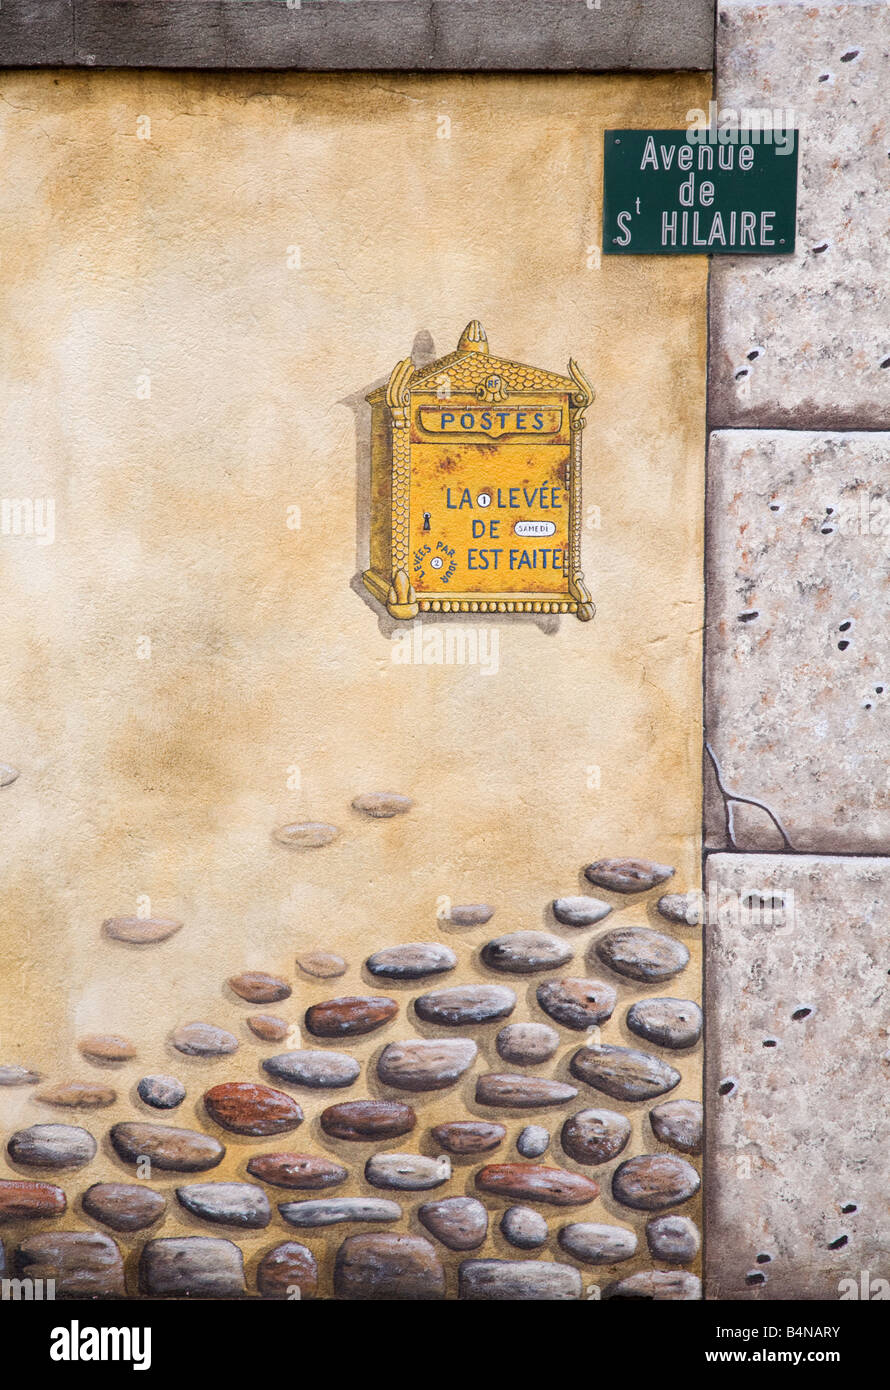 Picture of a street sign in a french wall mural in st hilaire picture of a street sign in a french wall mural in st hilaire southern france amipublicfo Image collections